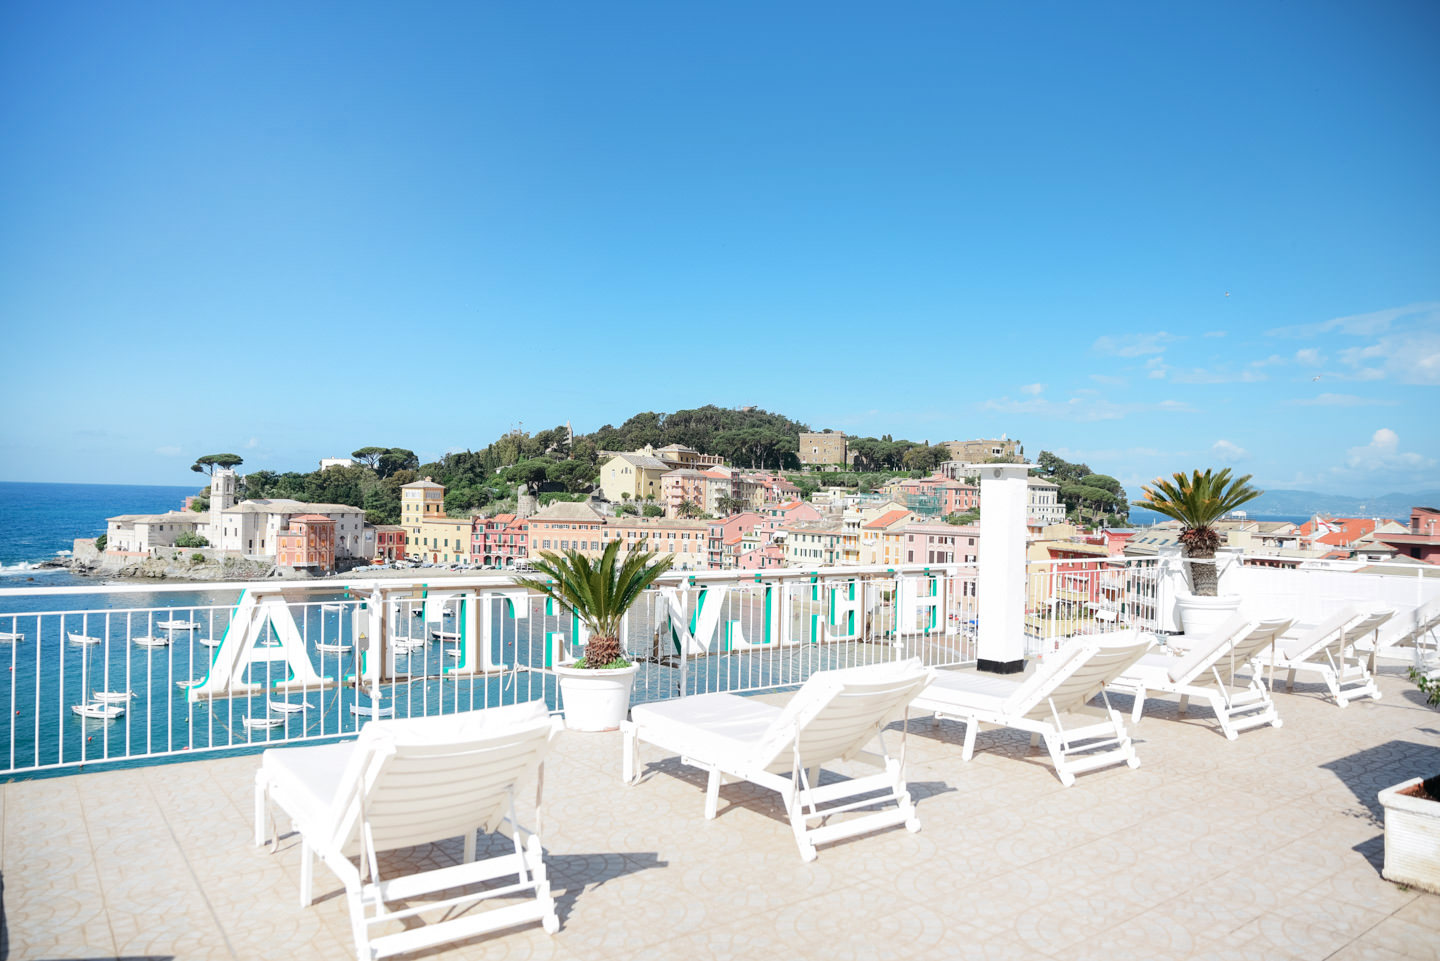 Blog-Mode-And-The-City-Lifestyle-Italie-Sestri-Levante-Cinque-Terre-4